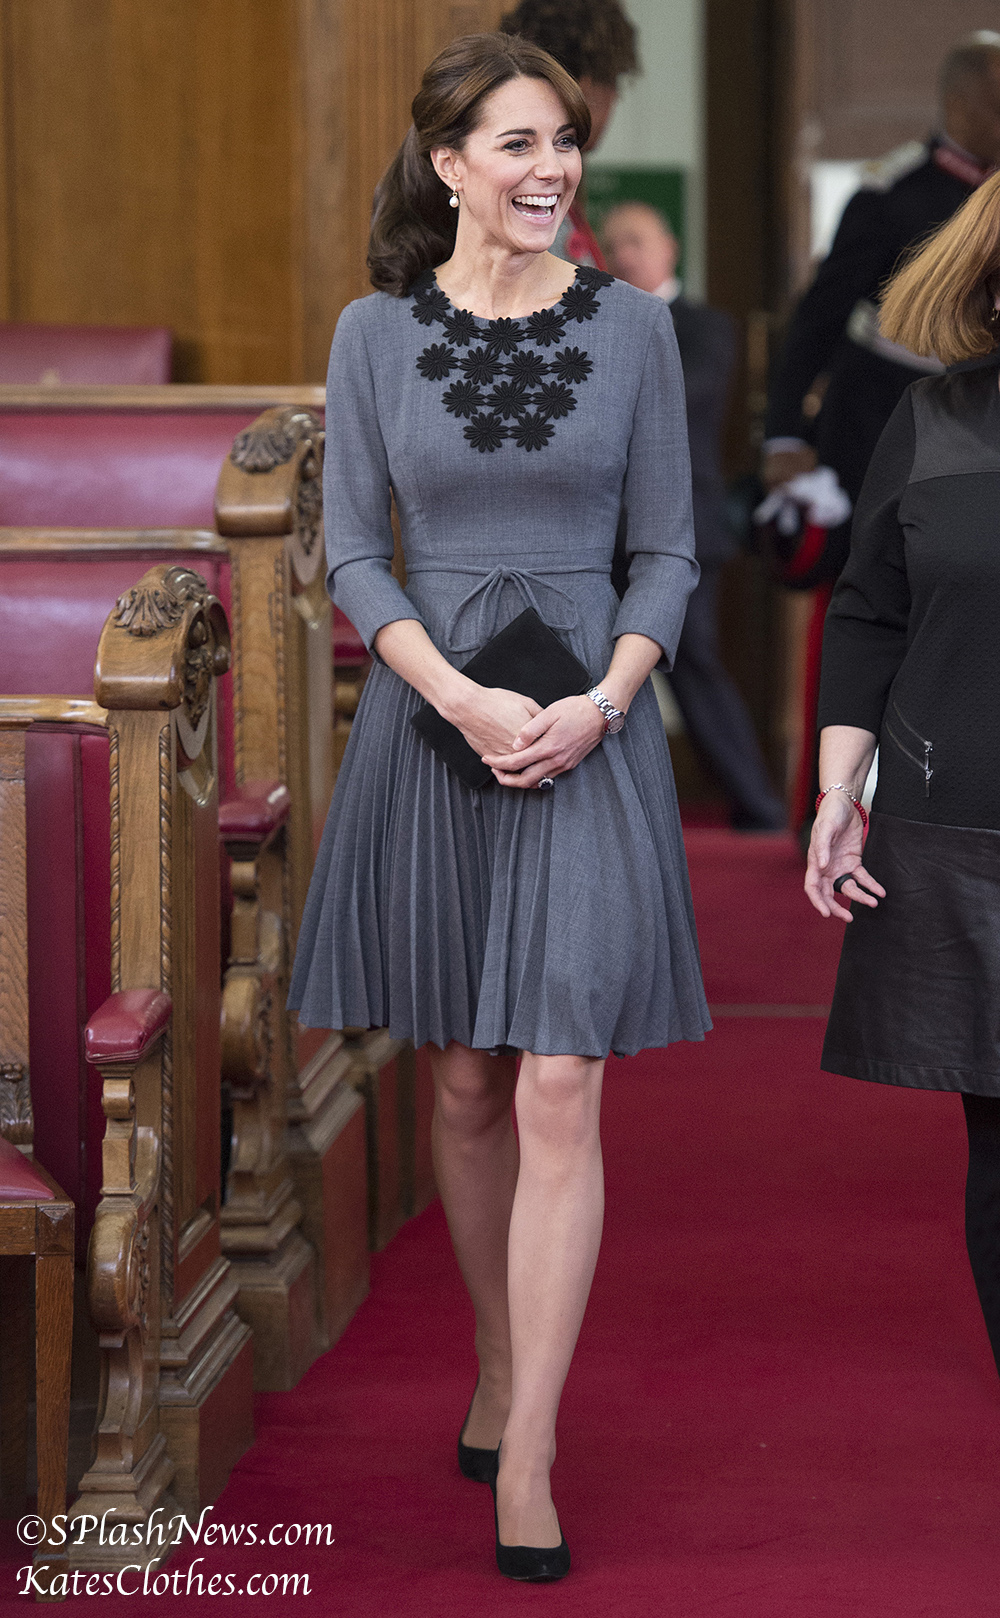 The Duchess of Cambridge attends a Chance UK event